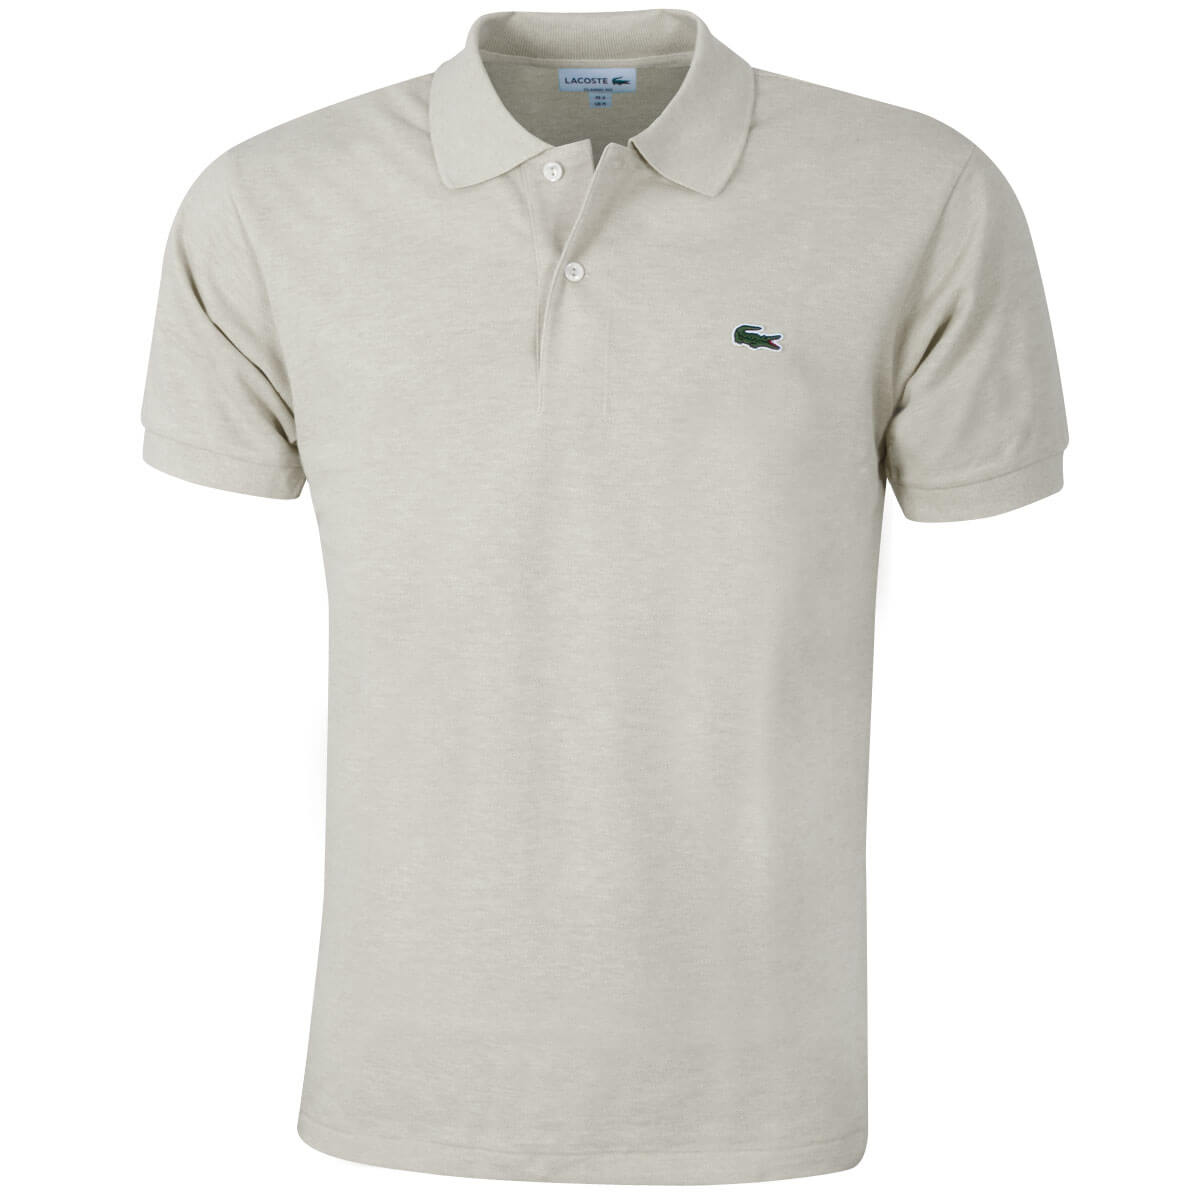 Lacoste mens 2018 l1264 original mottled short sleeve polo for Lacoste poloshirt weiay